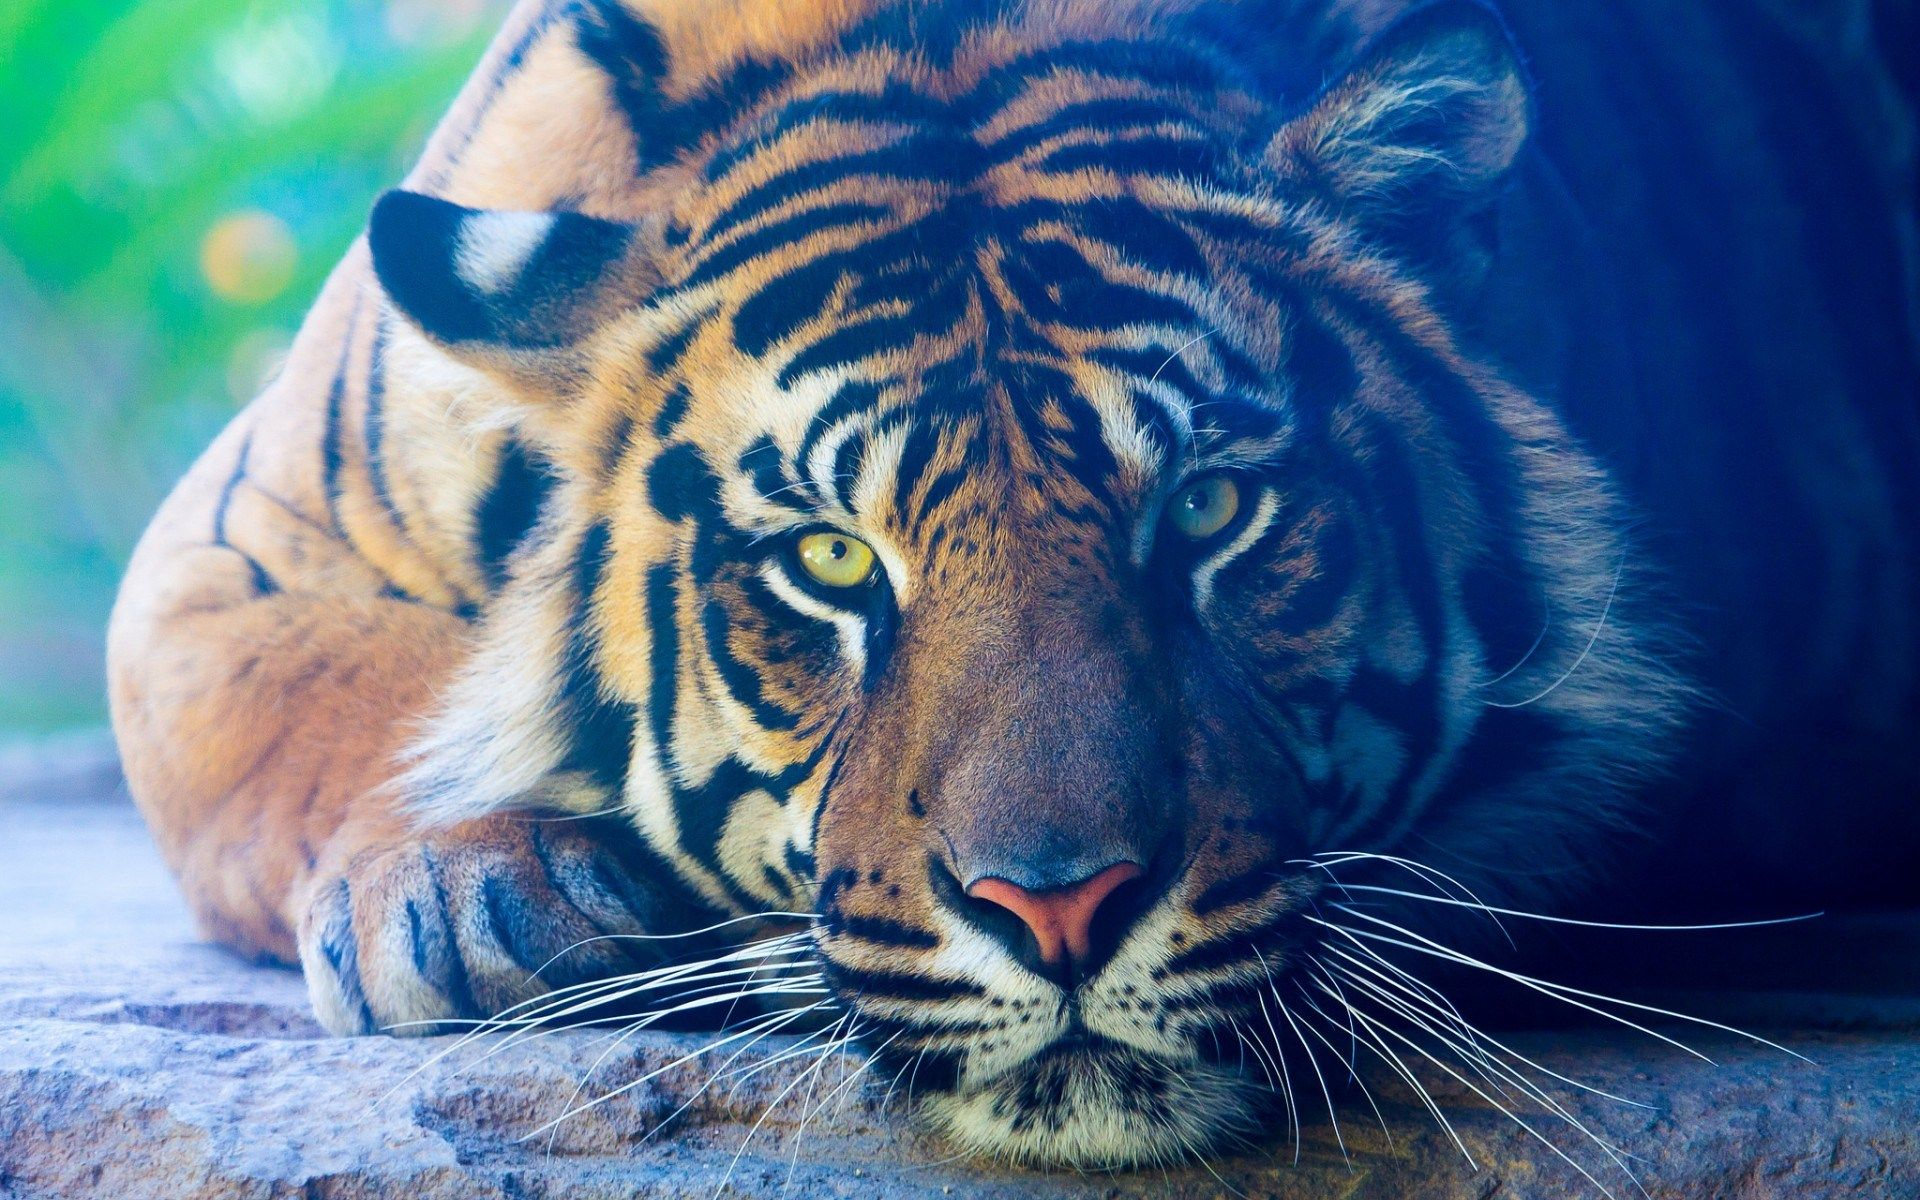 1417470, high resolution wallpapers = tiger picture | ololoshenka